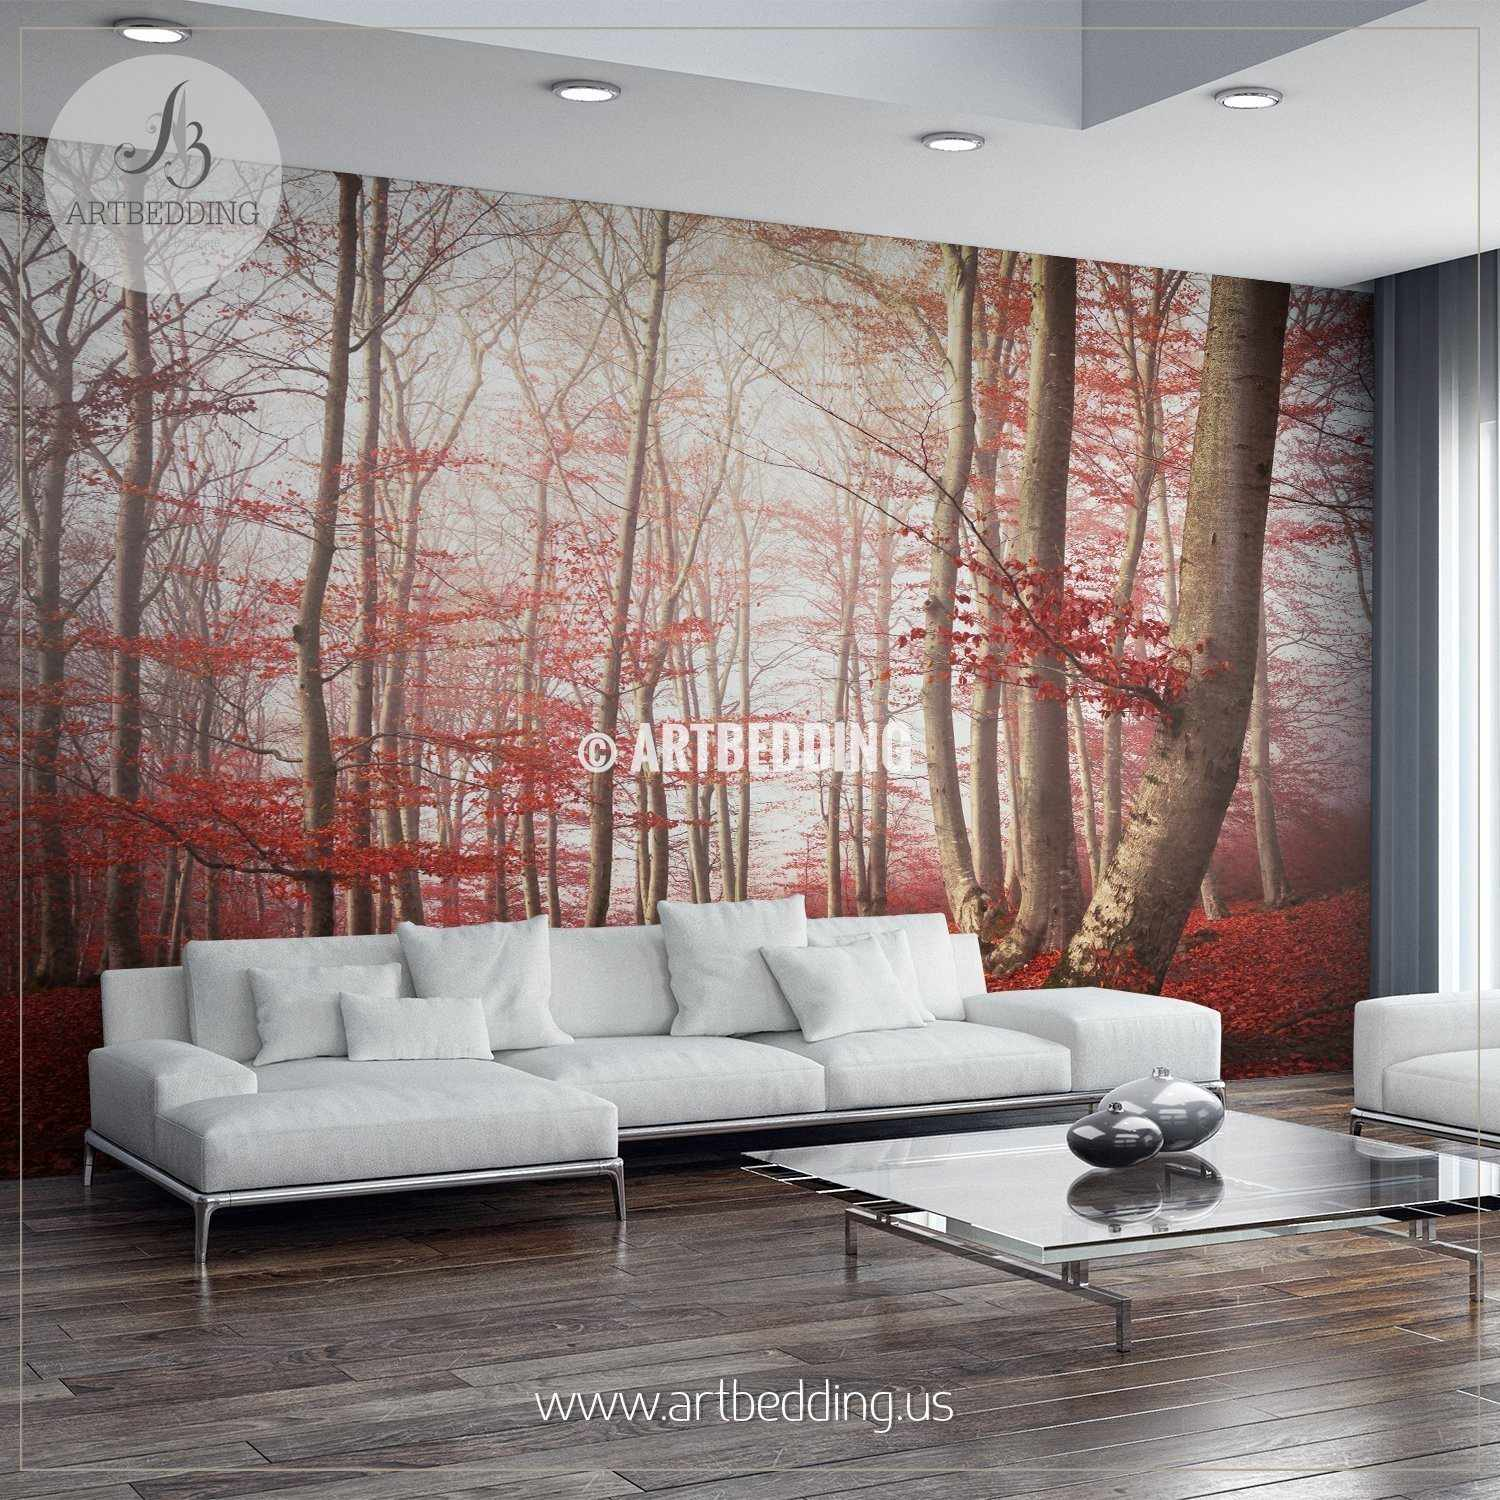 Red leaves in mystical forest wall mural serene forest scene self red leaves in mystical forest self adhesive peel stick nature wall mural wall mural amipublicfo Choice Image